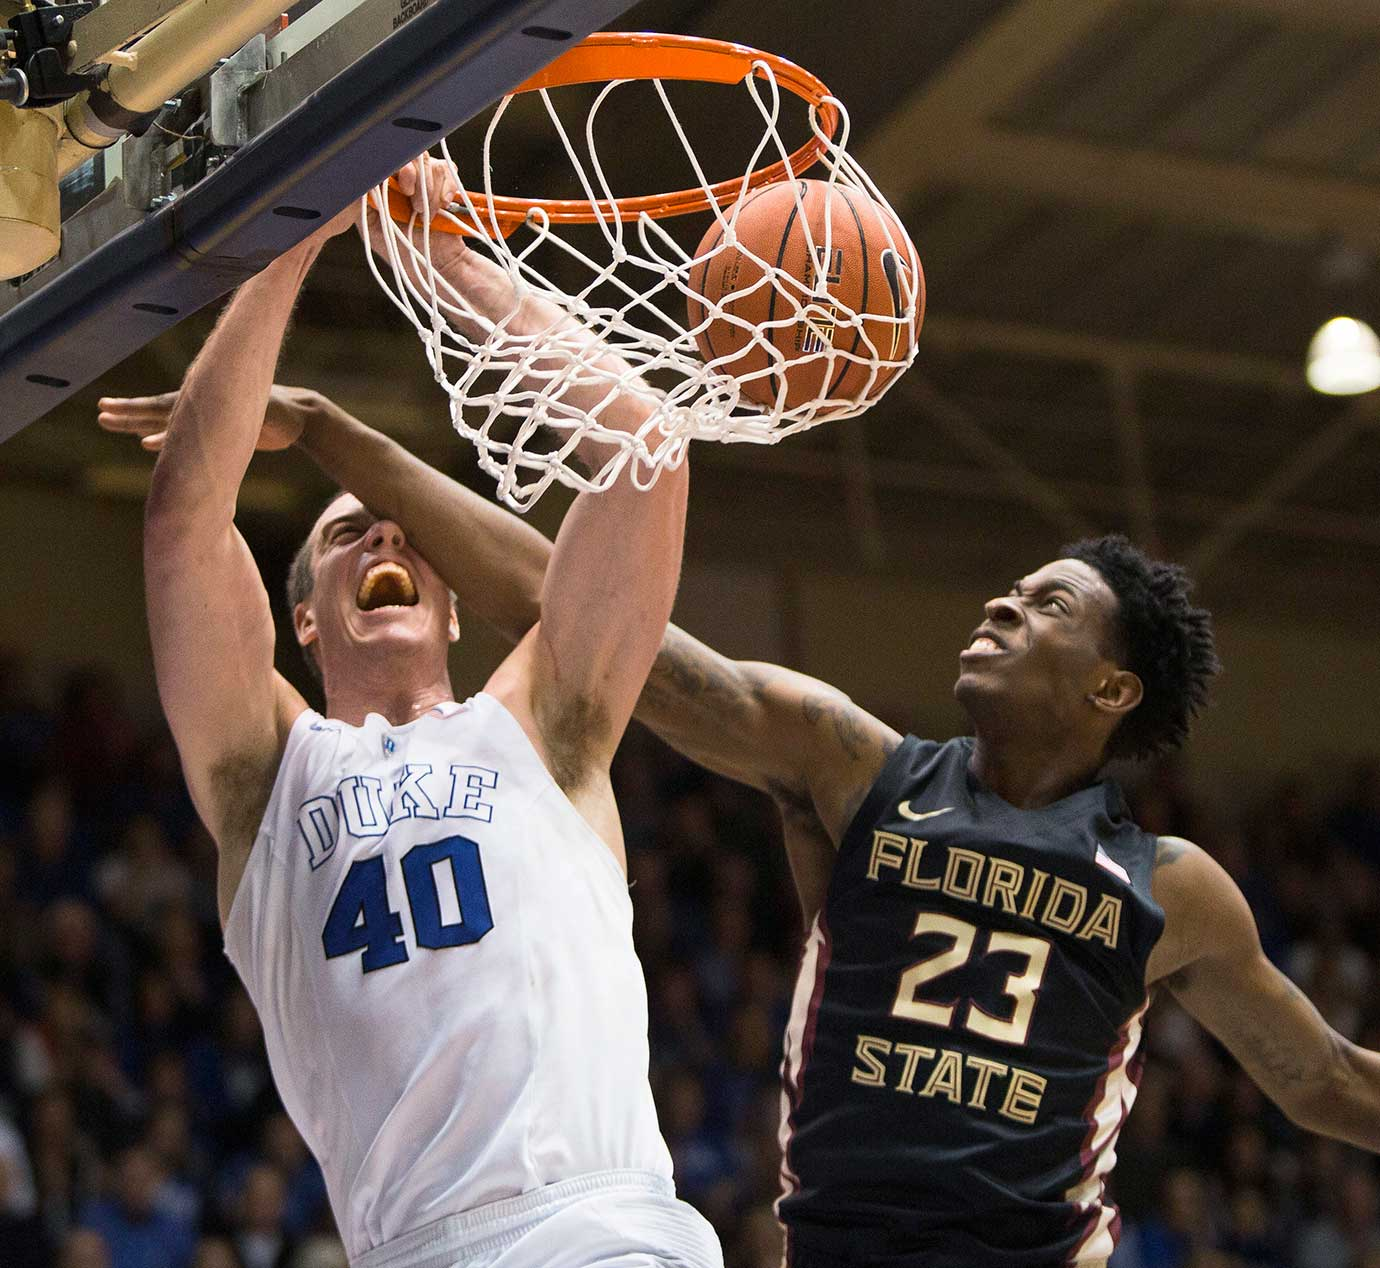 Duke's Marshall Plumlee dunks against Florida State's Jarquez Smith.